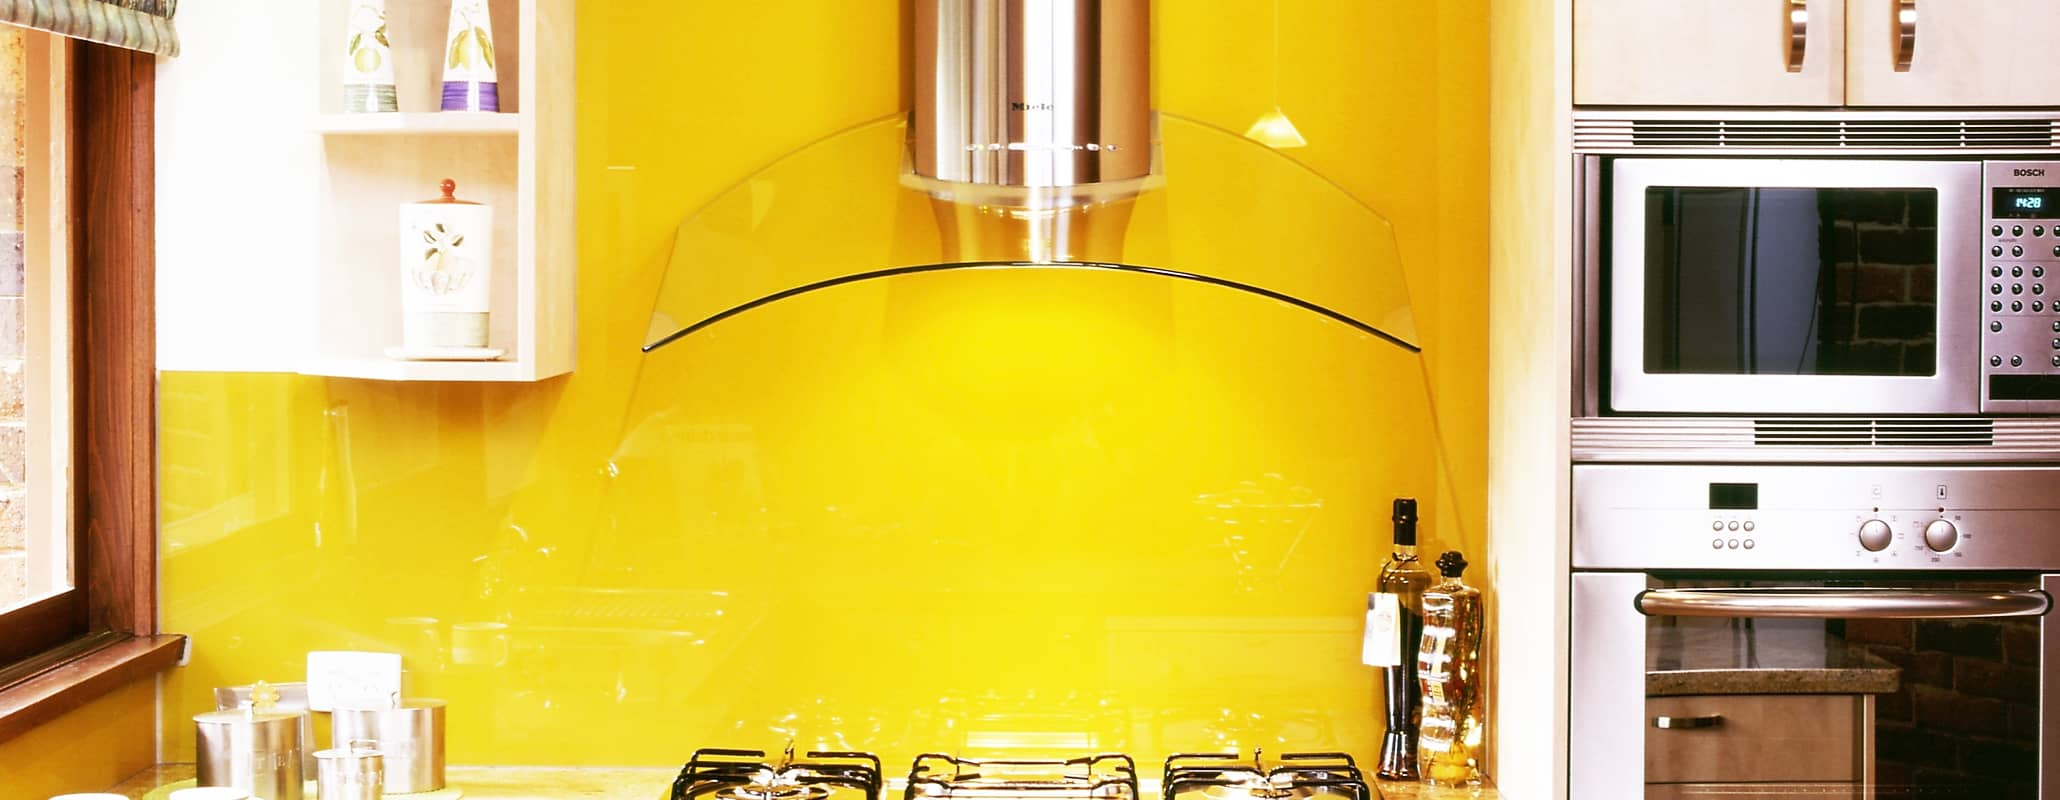 Kitchen view with microwave and oven on the right, surrounded by cabinets. Stove in front of yellow Aldora back-painted glass and underneath glass and metal hood. Sink to the left with open cabinets showing cups.